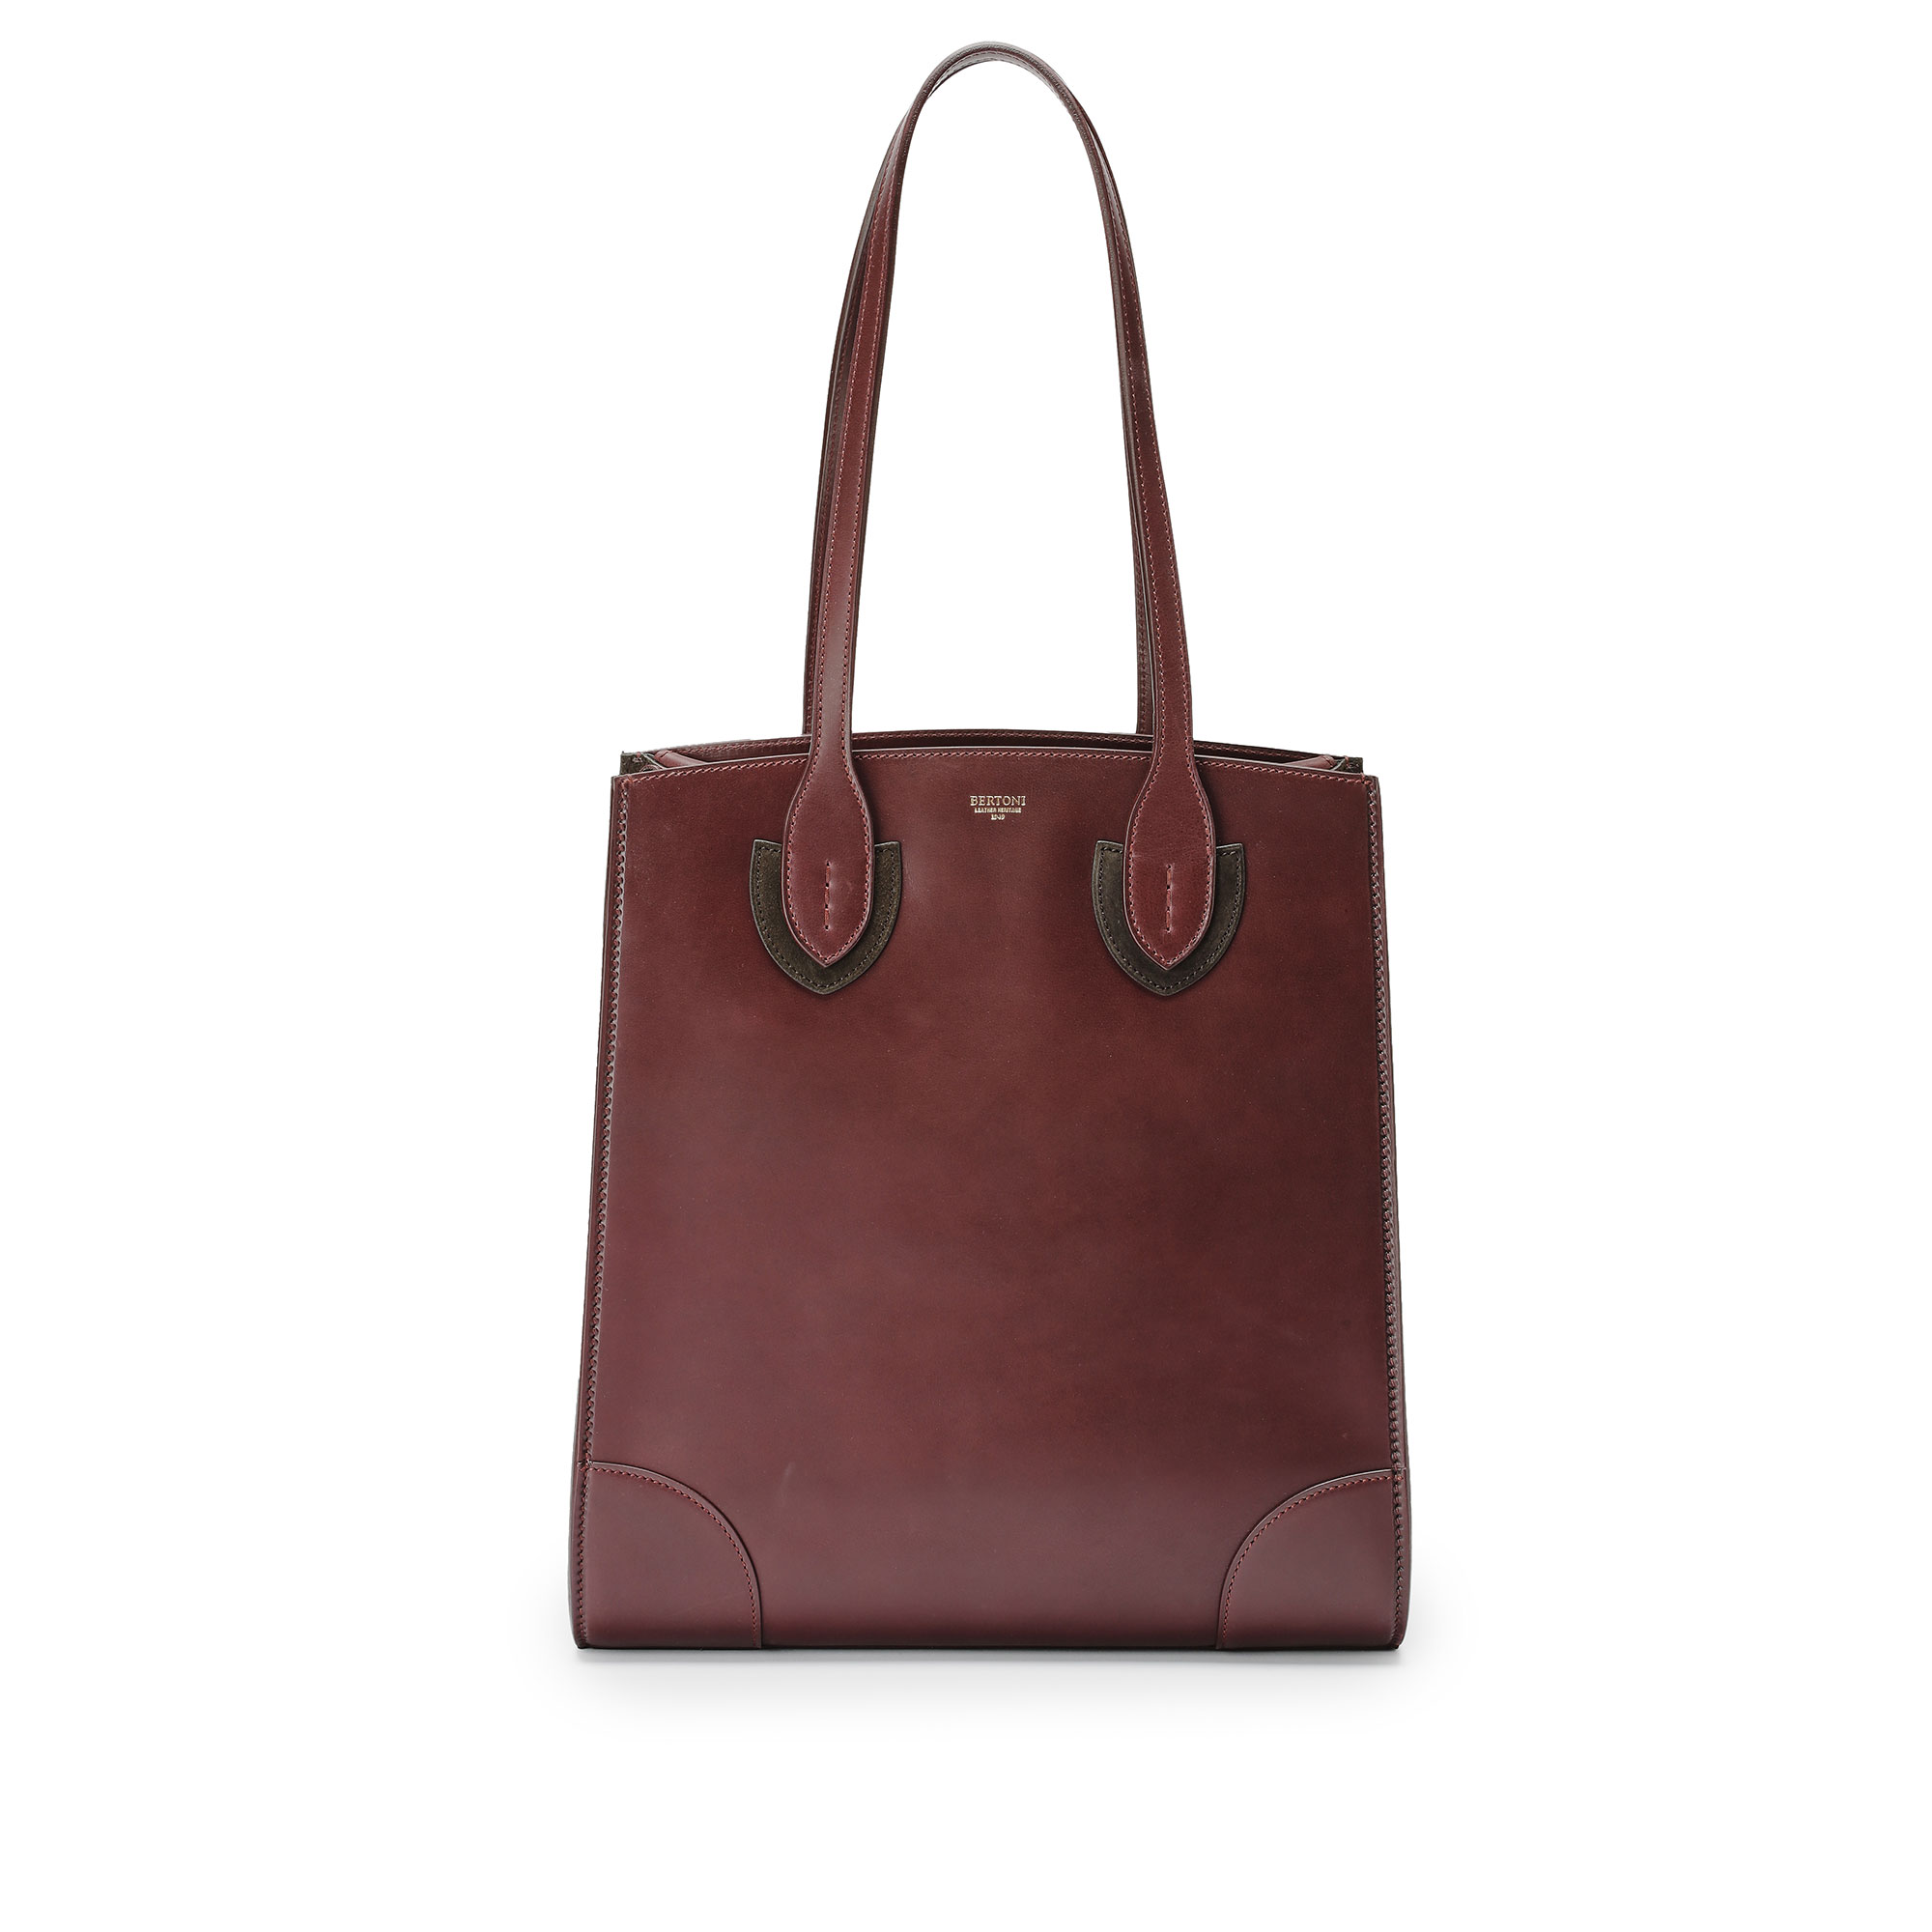 Darcy-Tote-bordeaux-french-calf-bag-Bertoni-1949